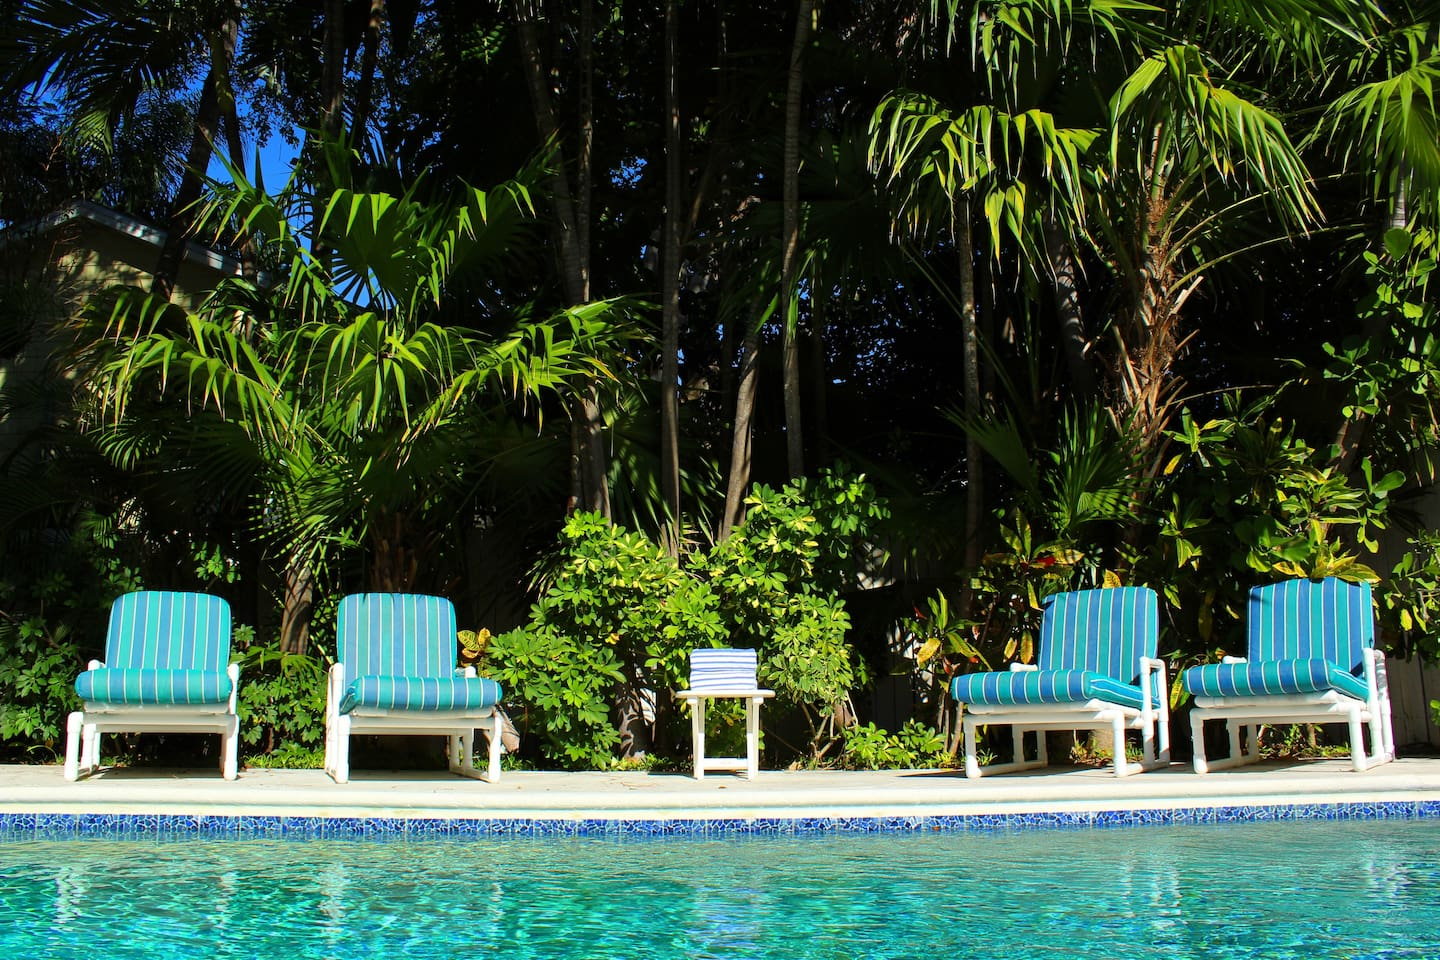 Take in the lush tropical surroundings found in this home